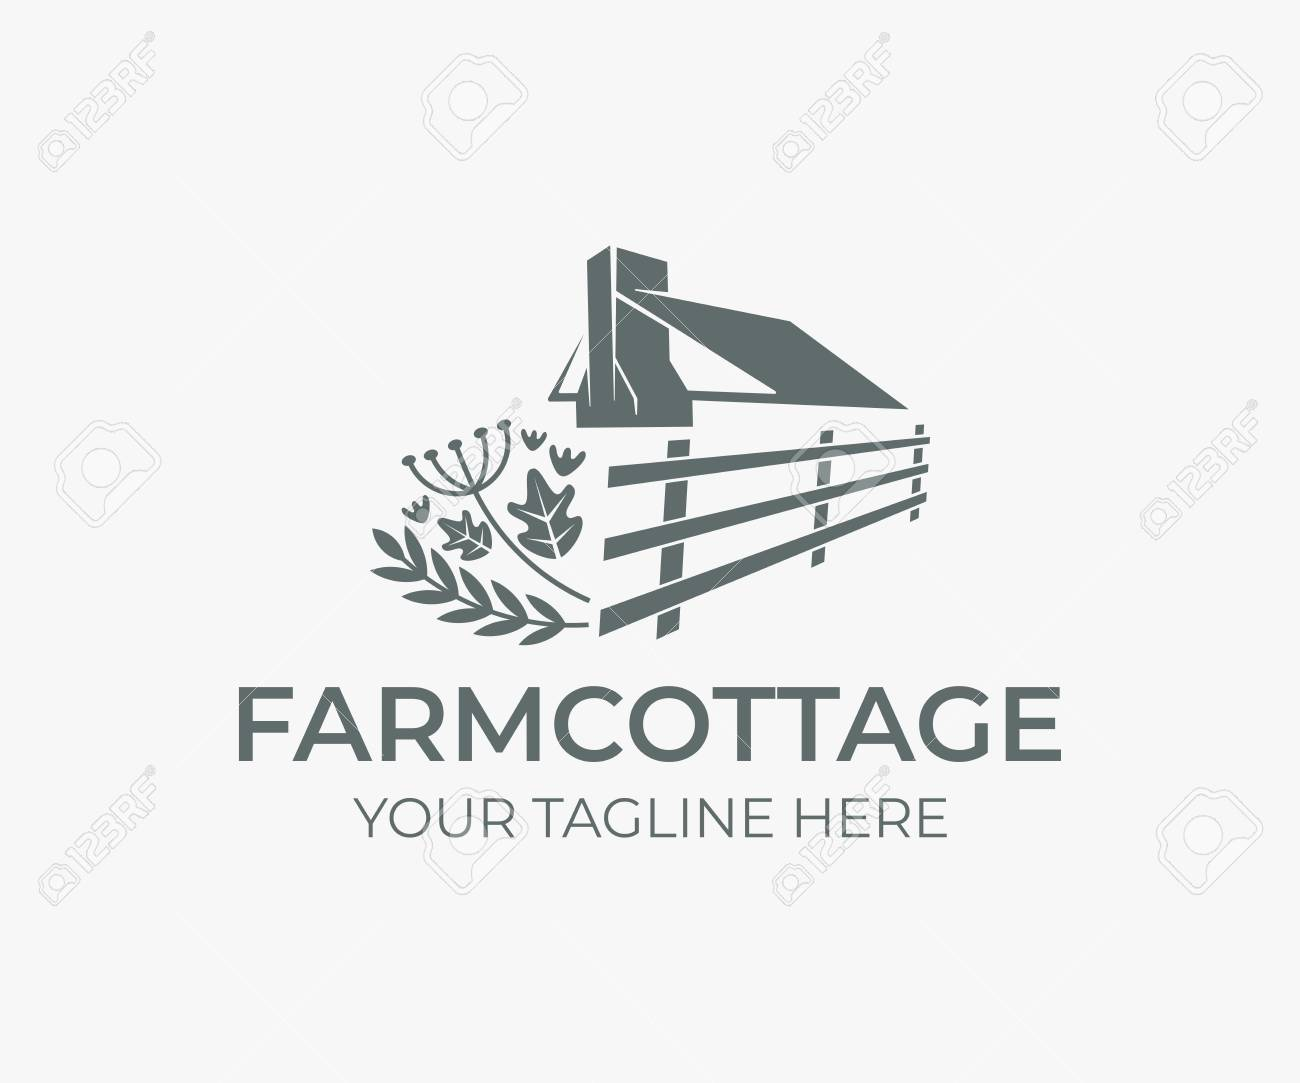 Wedding Farm Cottage Roof And Chimney With Fence And Herbs Logo Royalty Free Cliparts Vectors And Stock Illustration Image 111606790